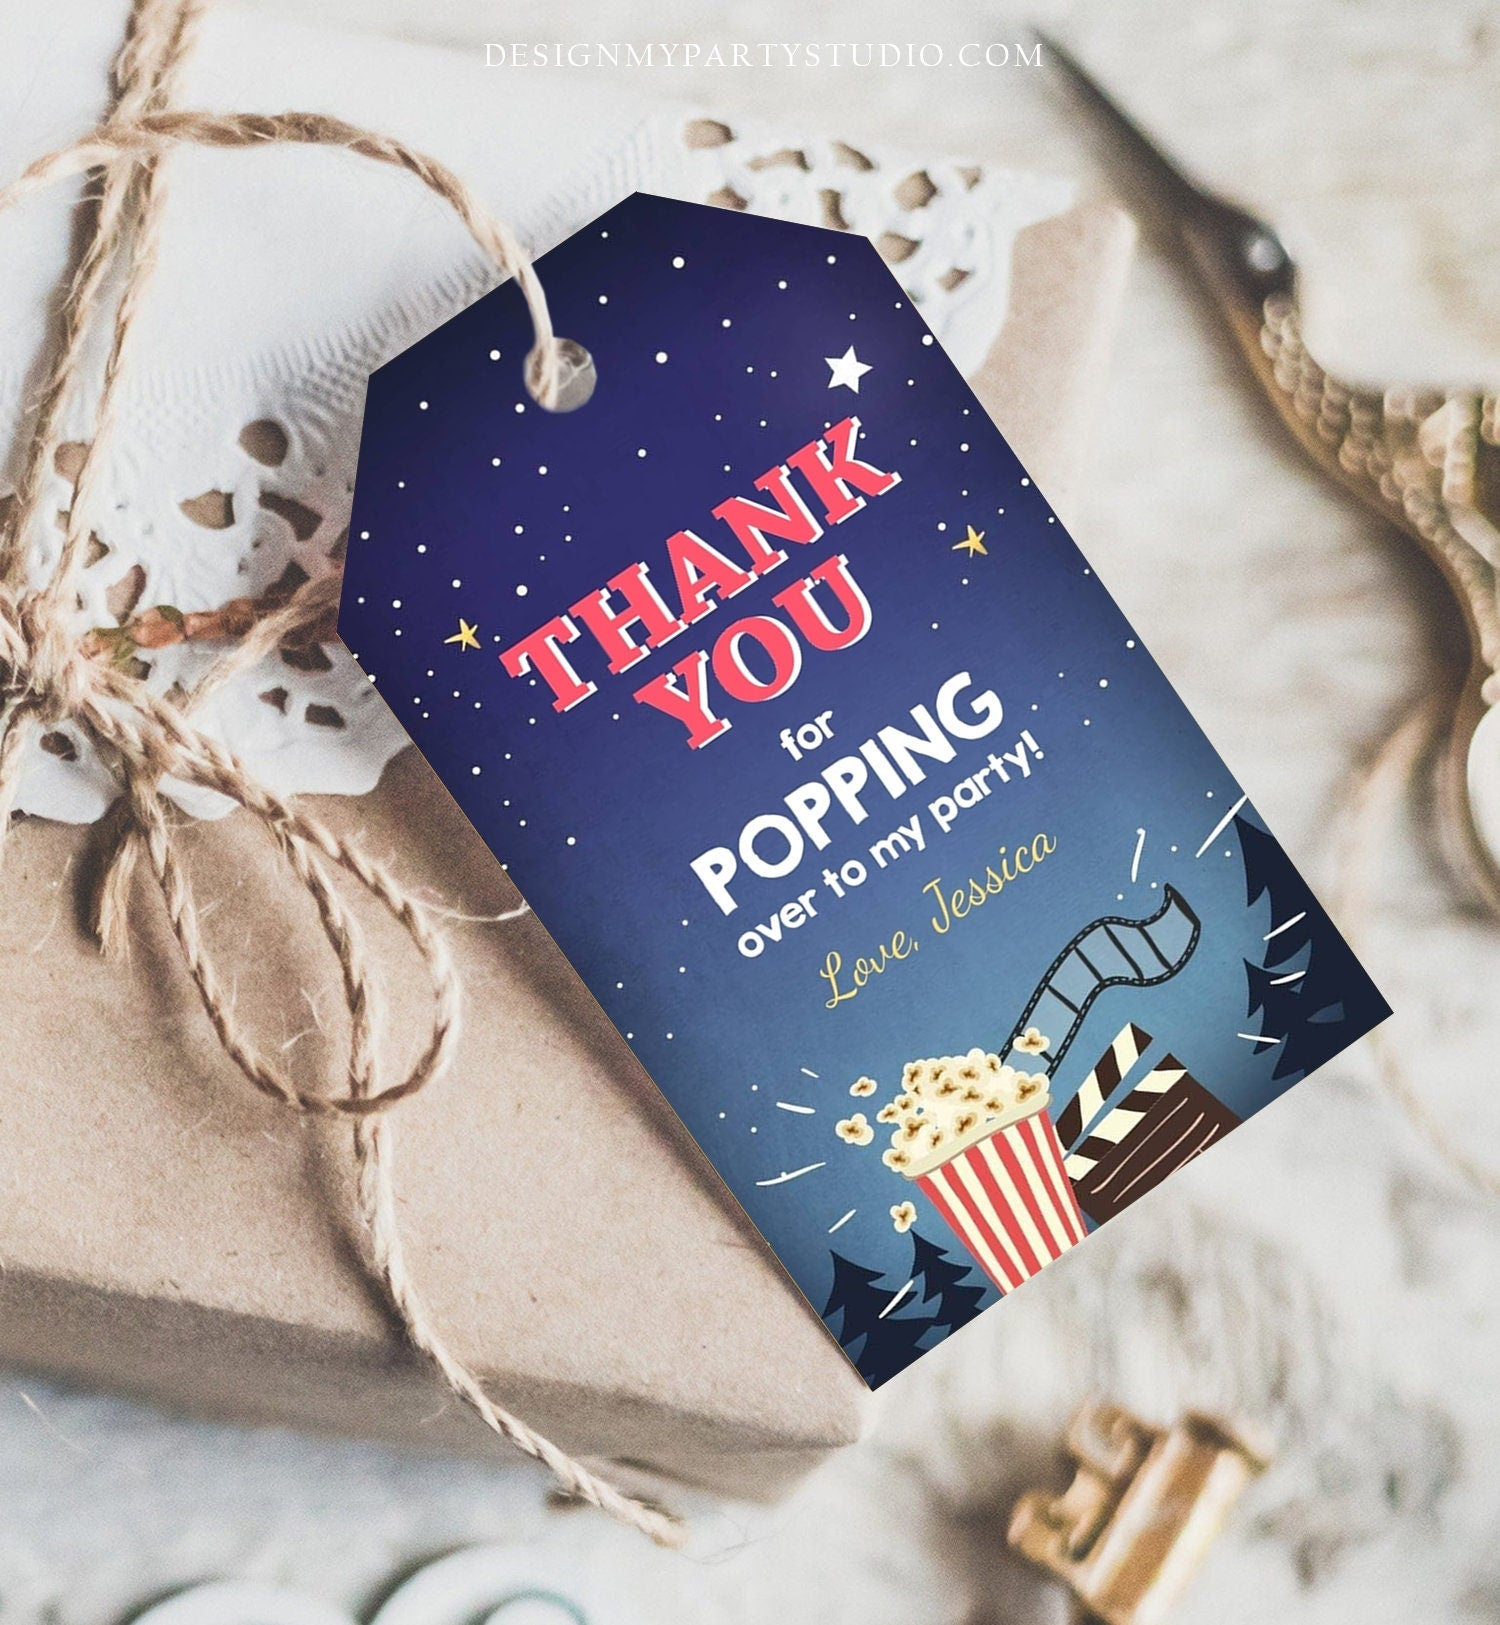 Editable Favor Tags Movie Night Thank you Gift Tags Cinema Movie Under The Stars Popcorn Backyard Movie Party Template PRINTABLE Corjl 0177